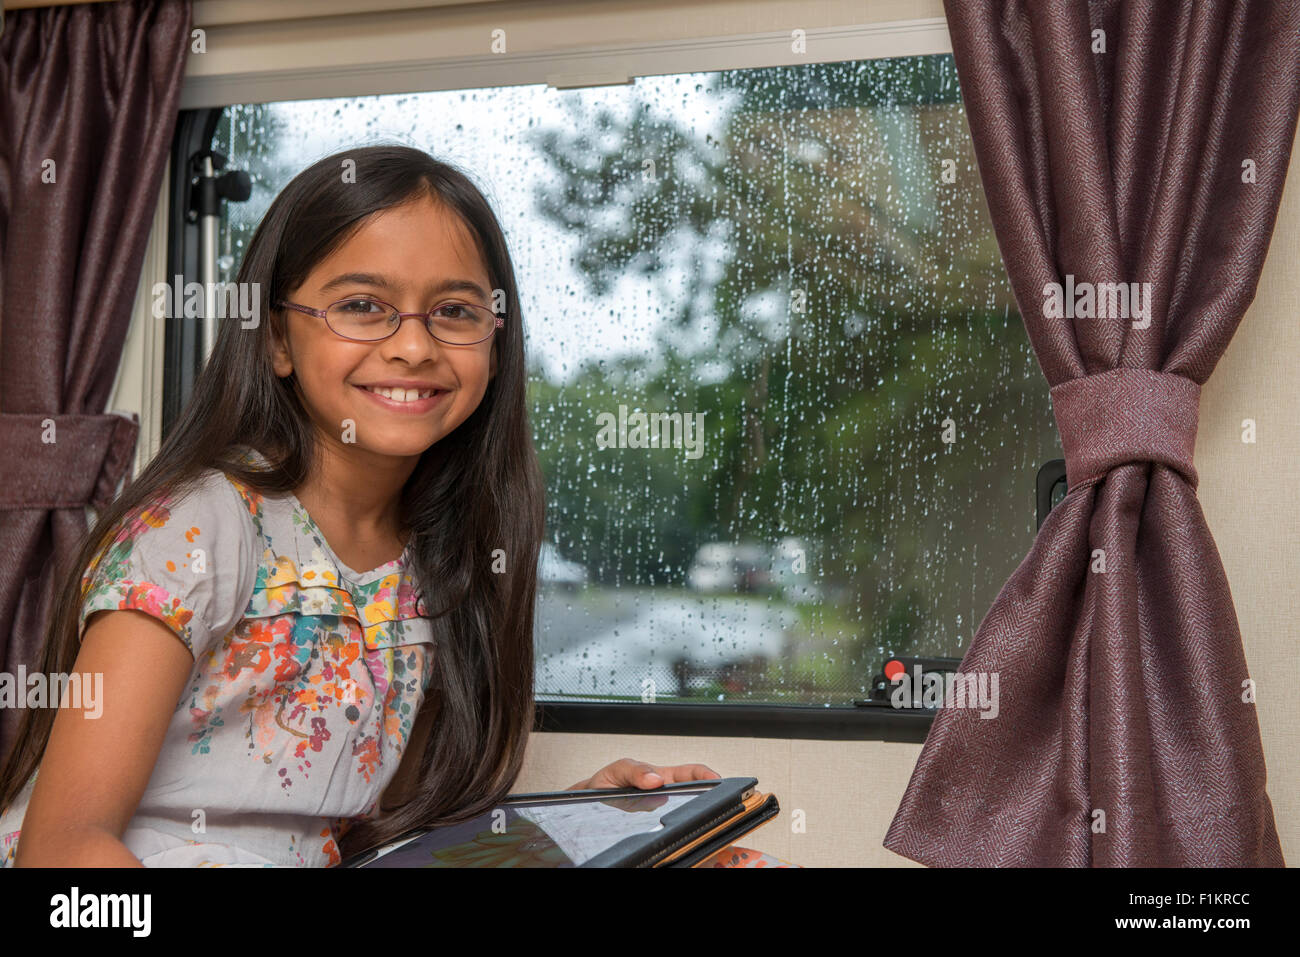 Girl smiling near a caravan window, in a rainy day, UK - Stock Image